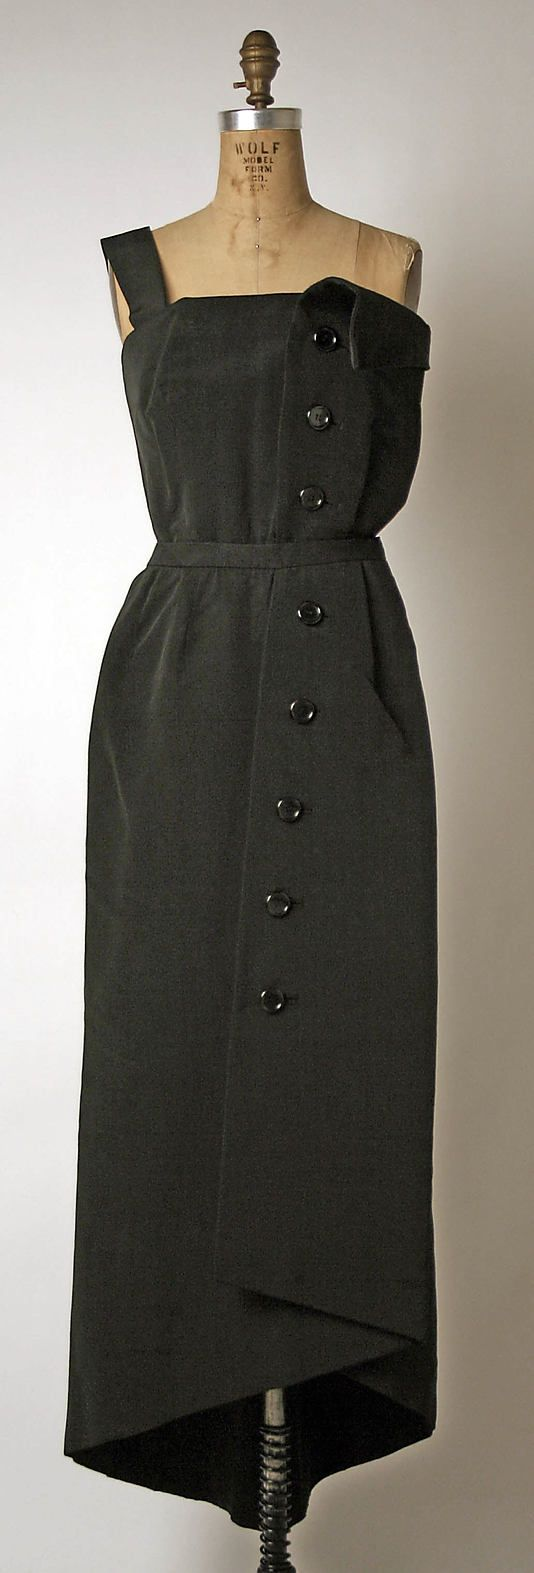 "Evening Dress, Christian Dior (French, 1905–1957) for the House of Dior (French, founded 1947): 1945-55, French, silk.    Marking: [label] ""Christian Dior, Paris"""